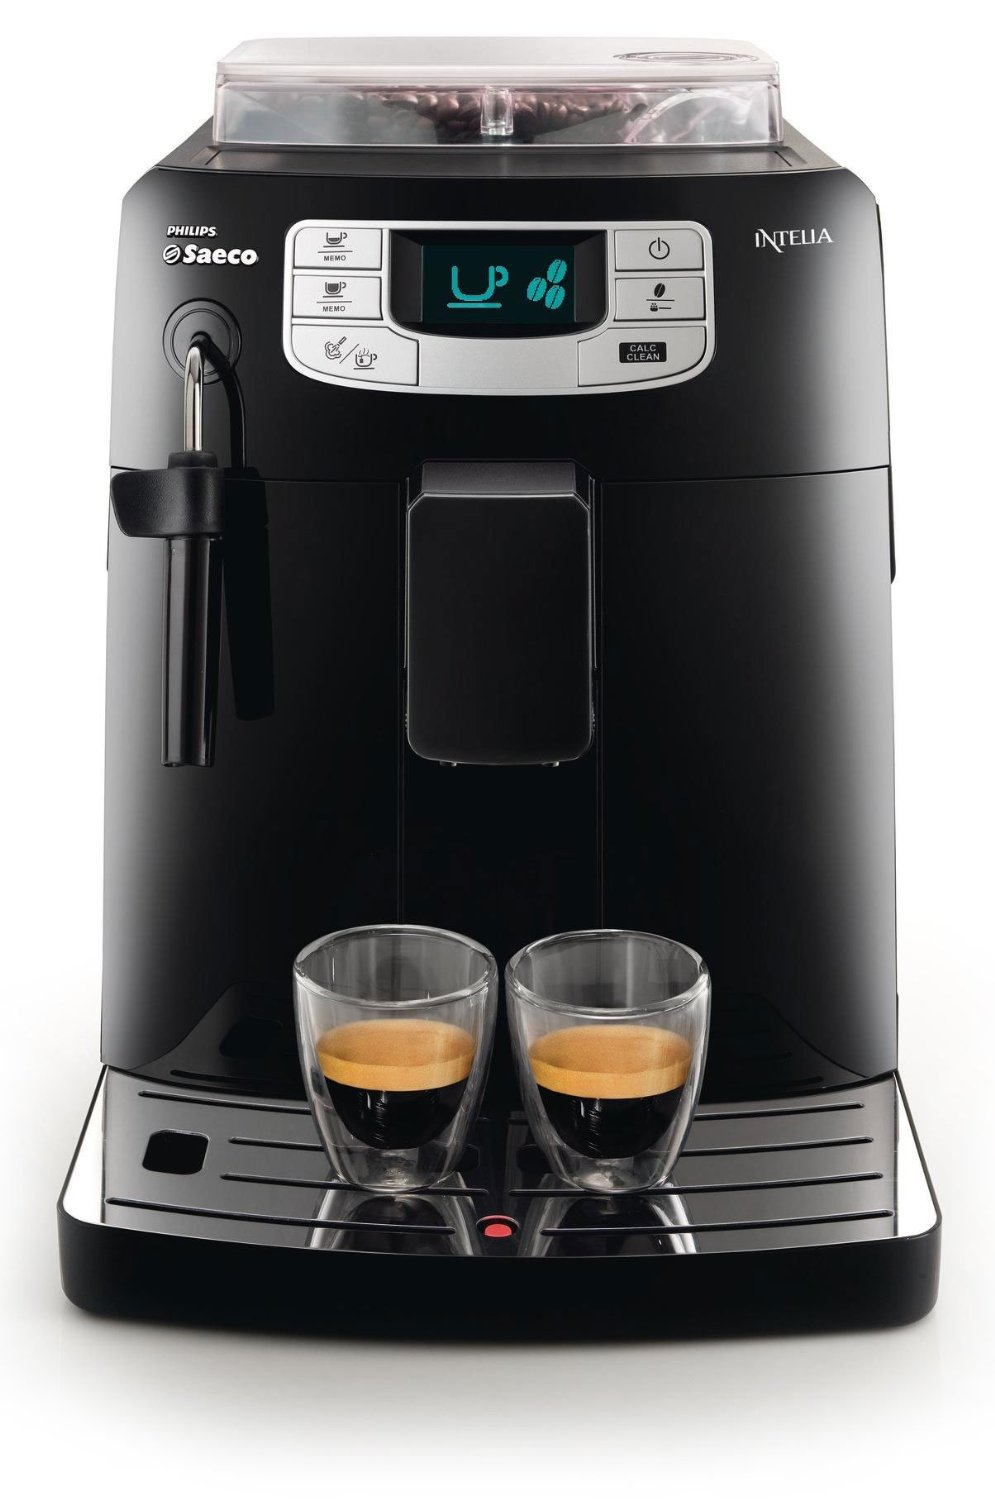 Cafetera Philips Saeco Intelia